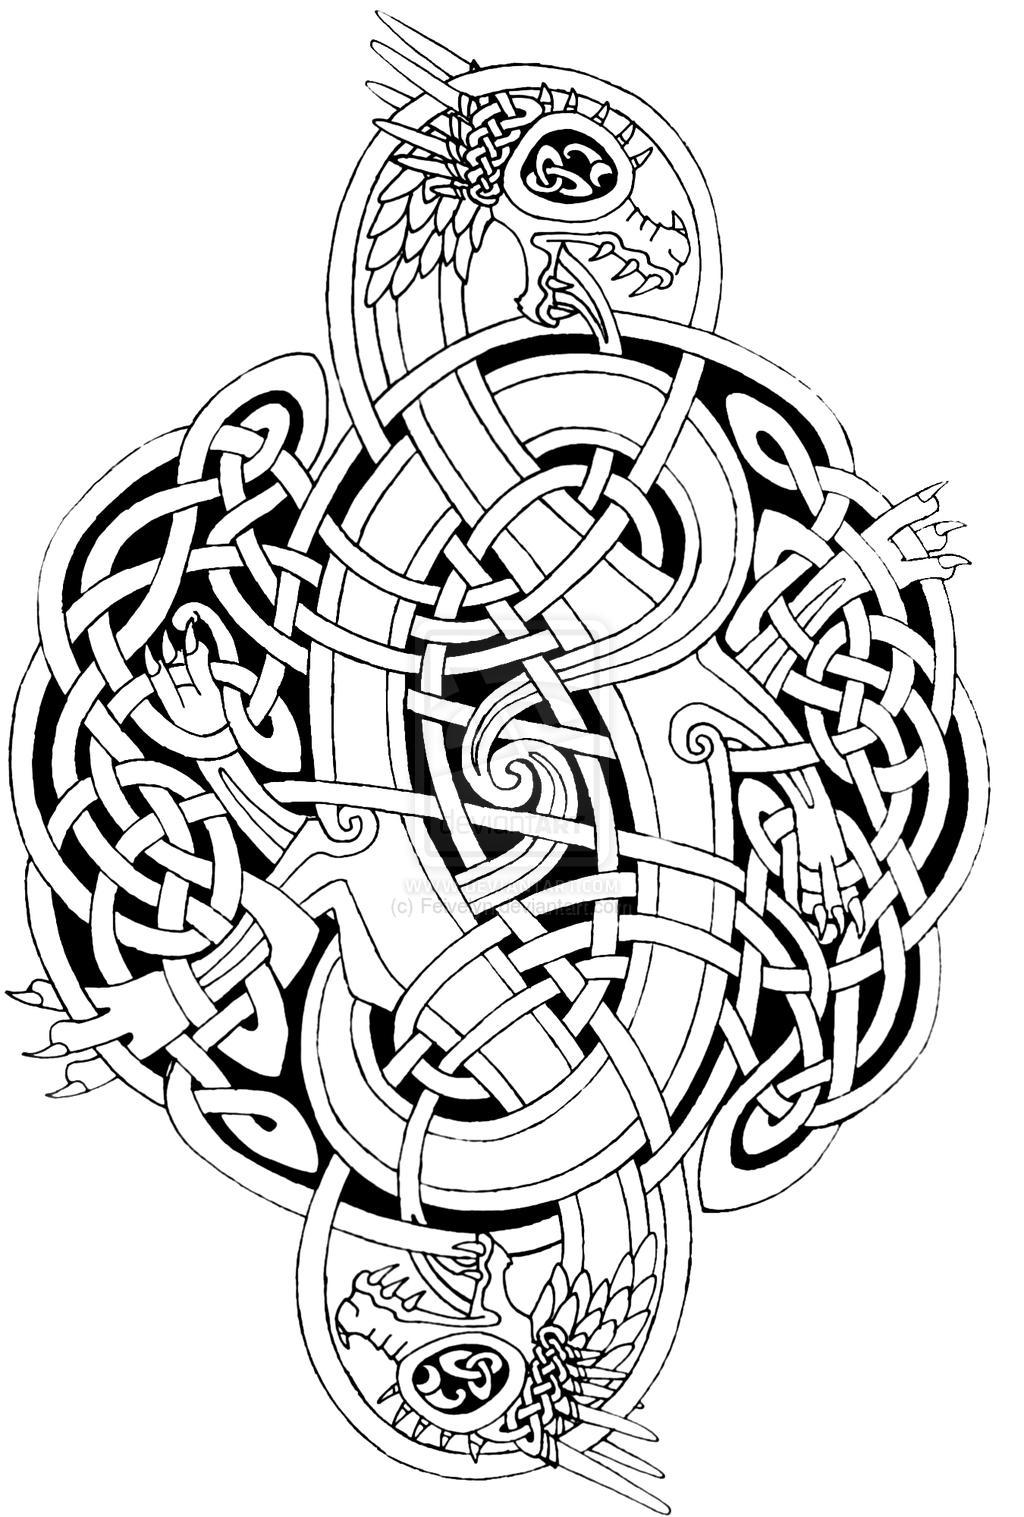 Book Kells Coloring Pages Clipart - Free Printable Coloring ...